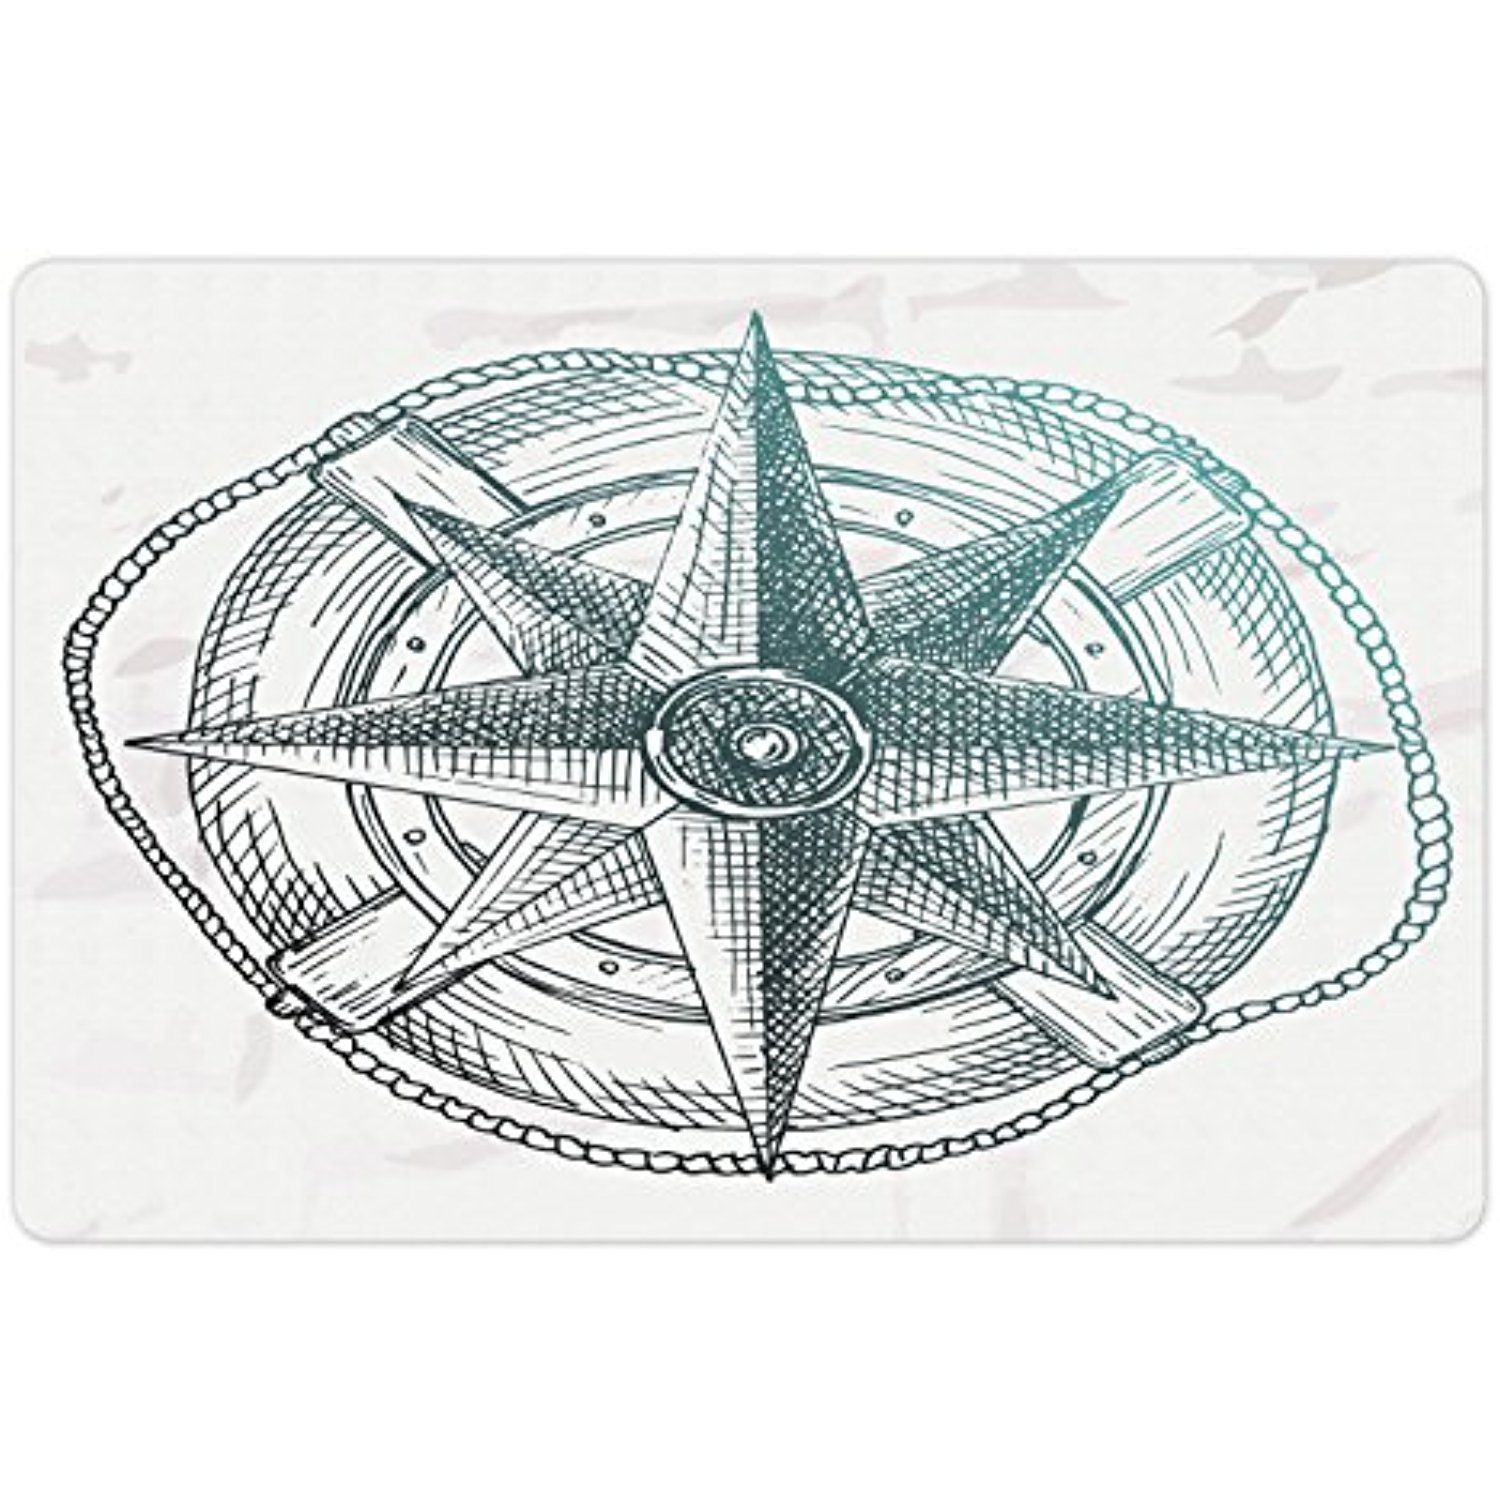 Nautical Pet Mats For Food And Water By Lunarable, Compass